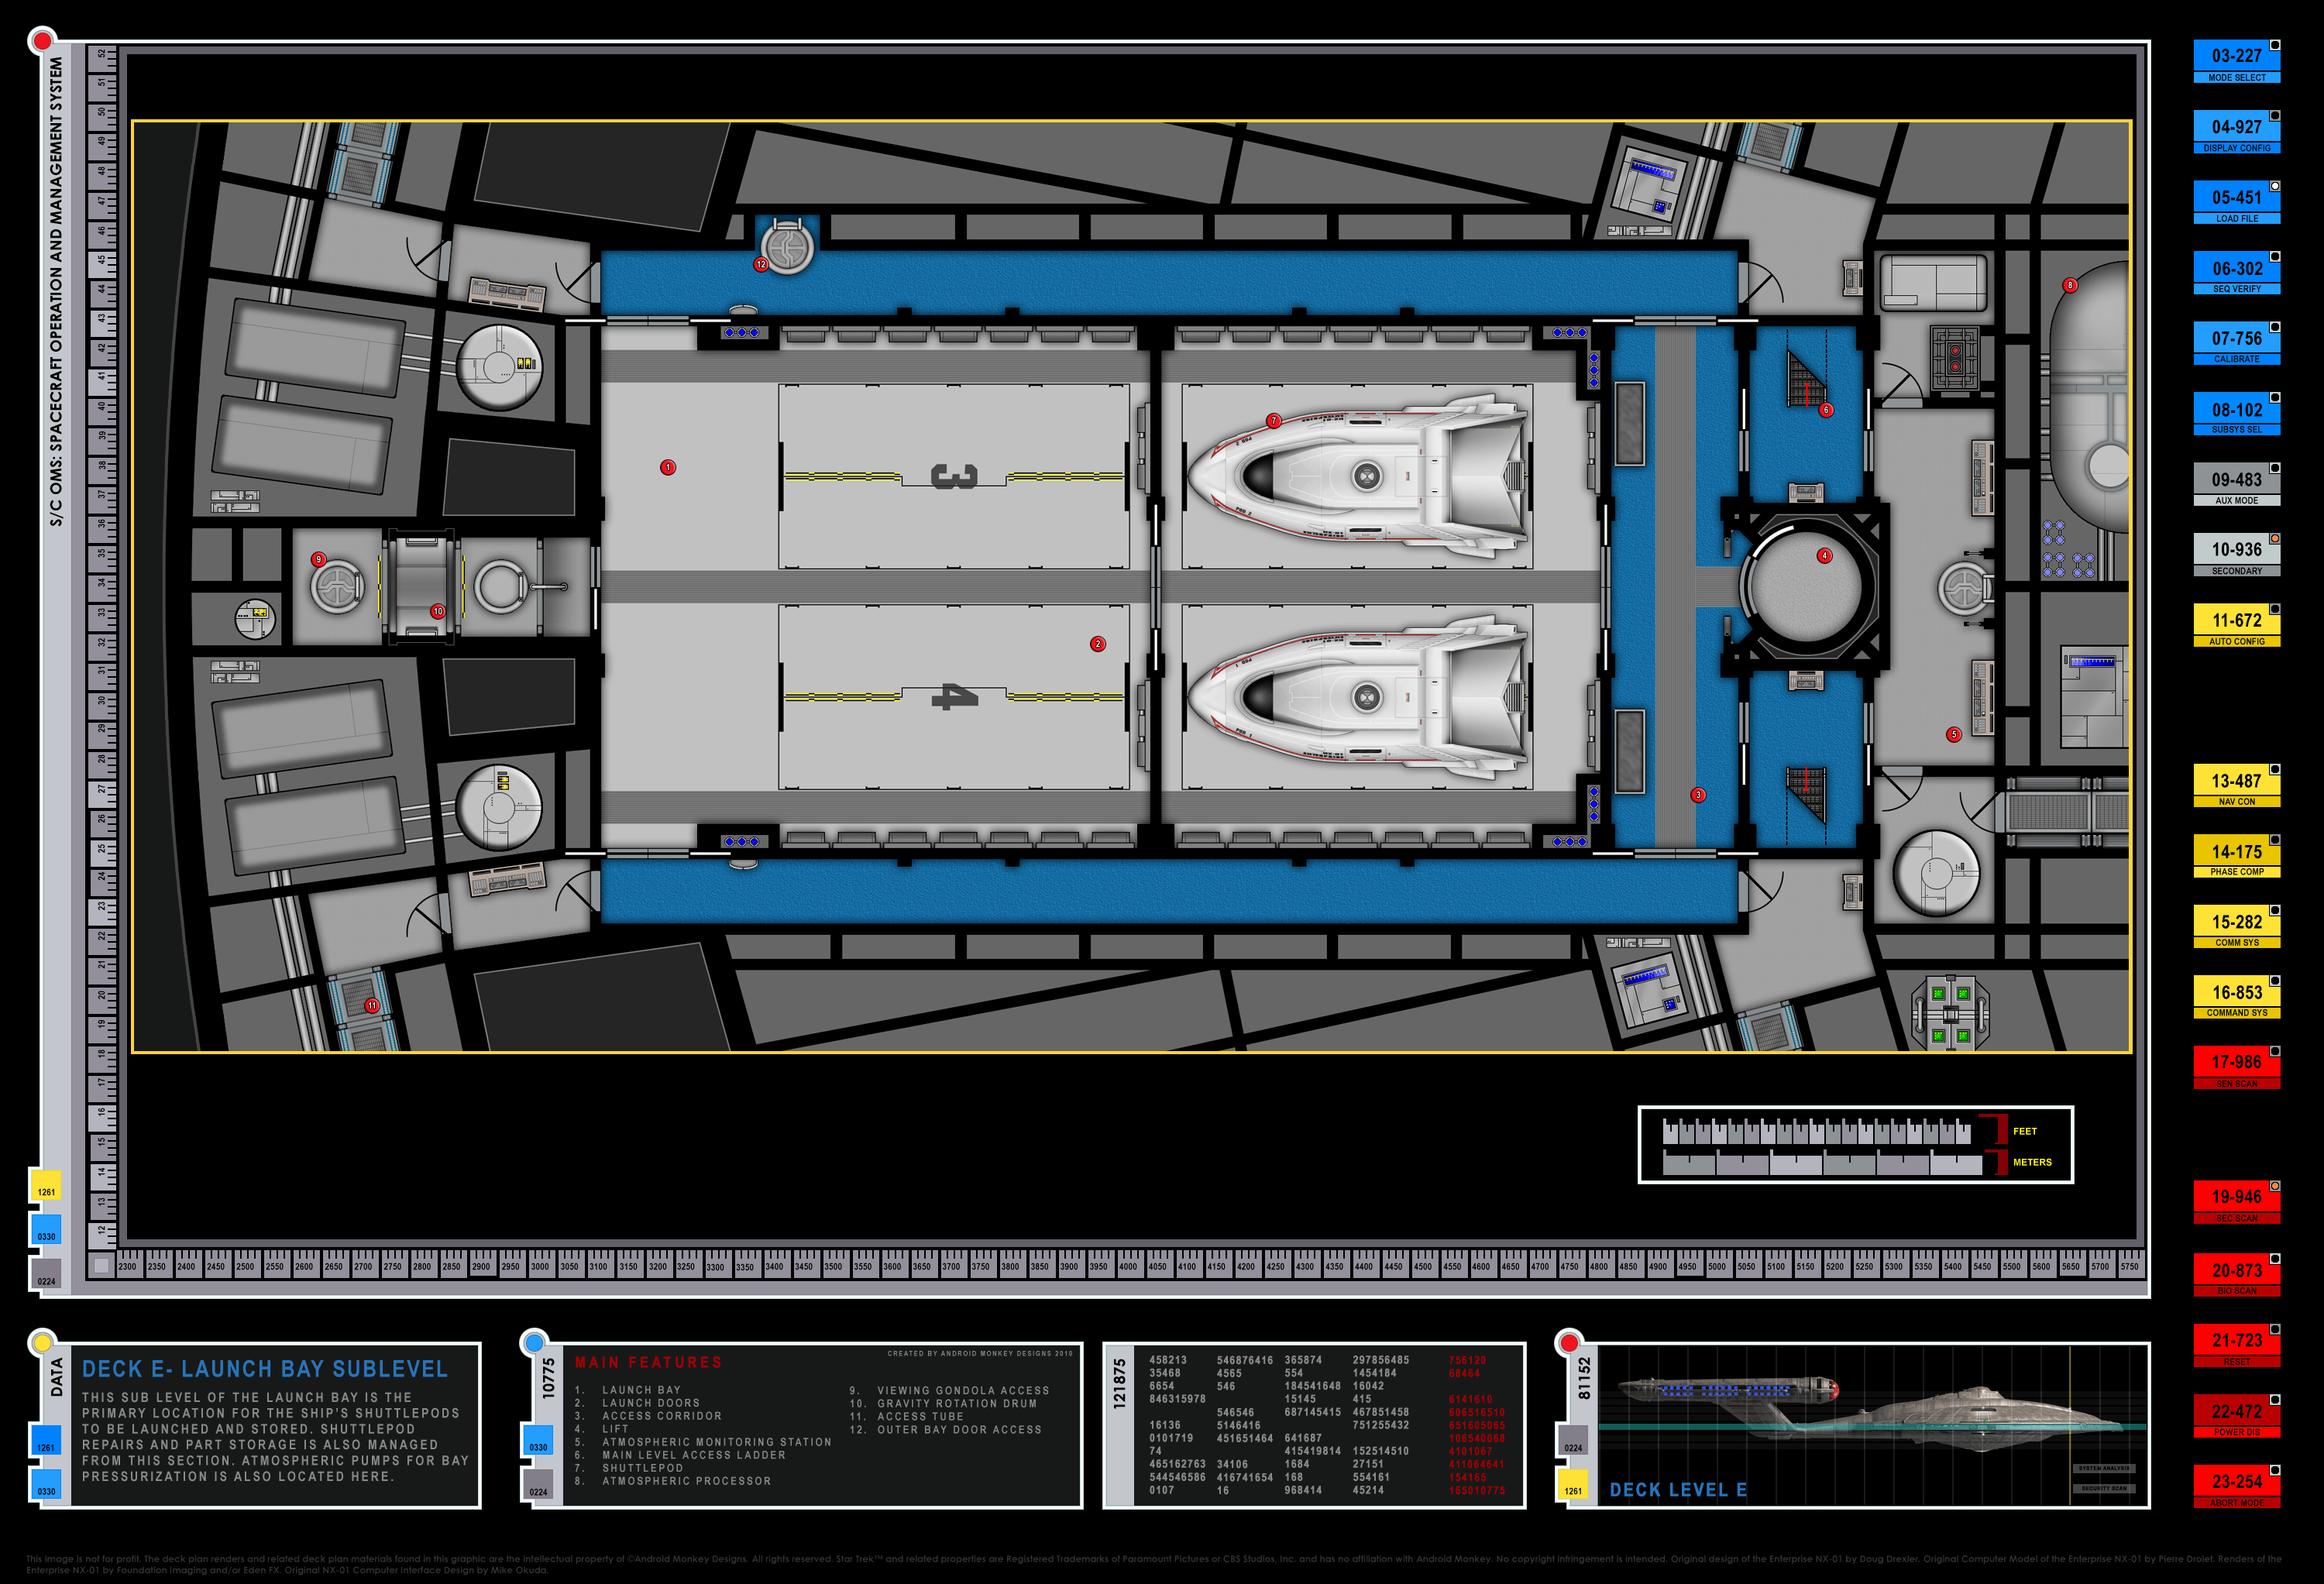 https://i2.wp.com/www.waxingmoondesign.com/images/Enterprise_NX-01_Launch_Bay_2_Detail_PV.png